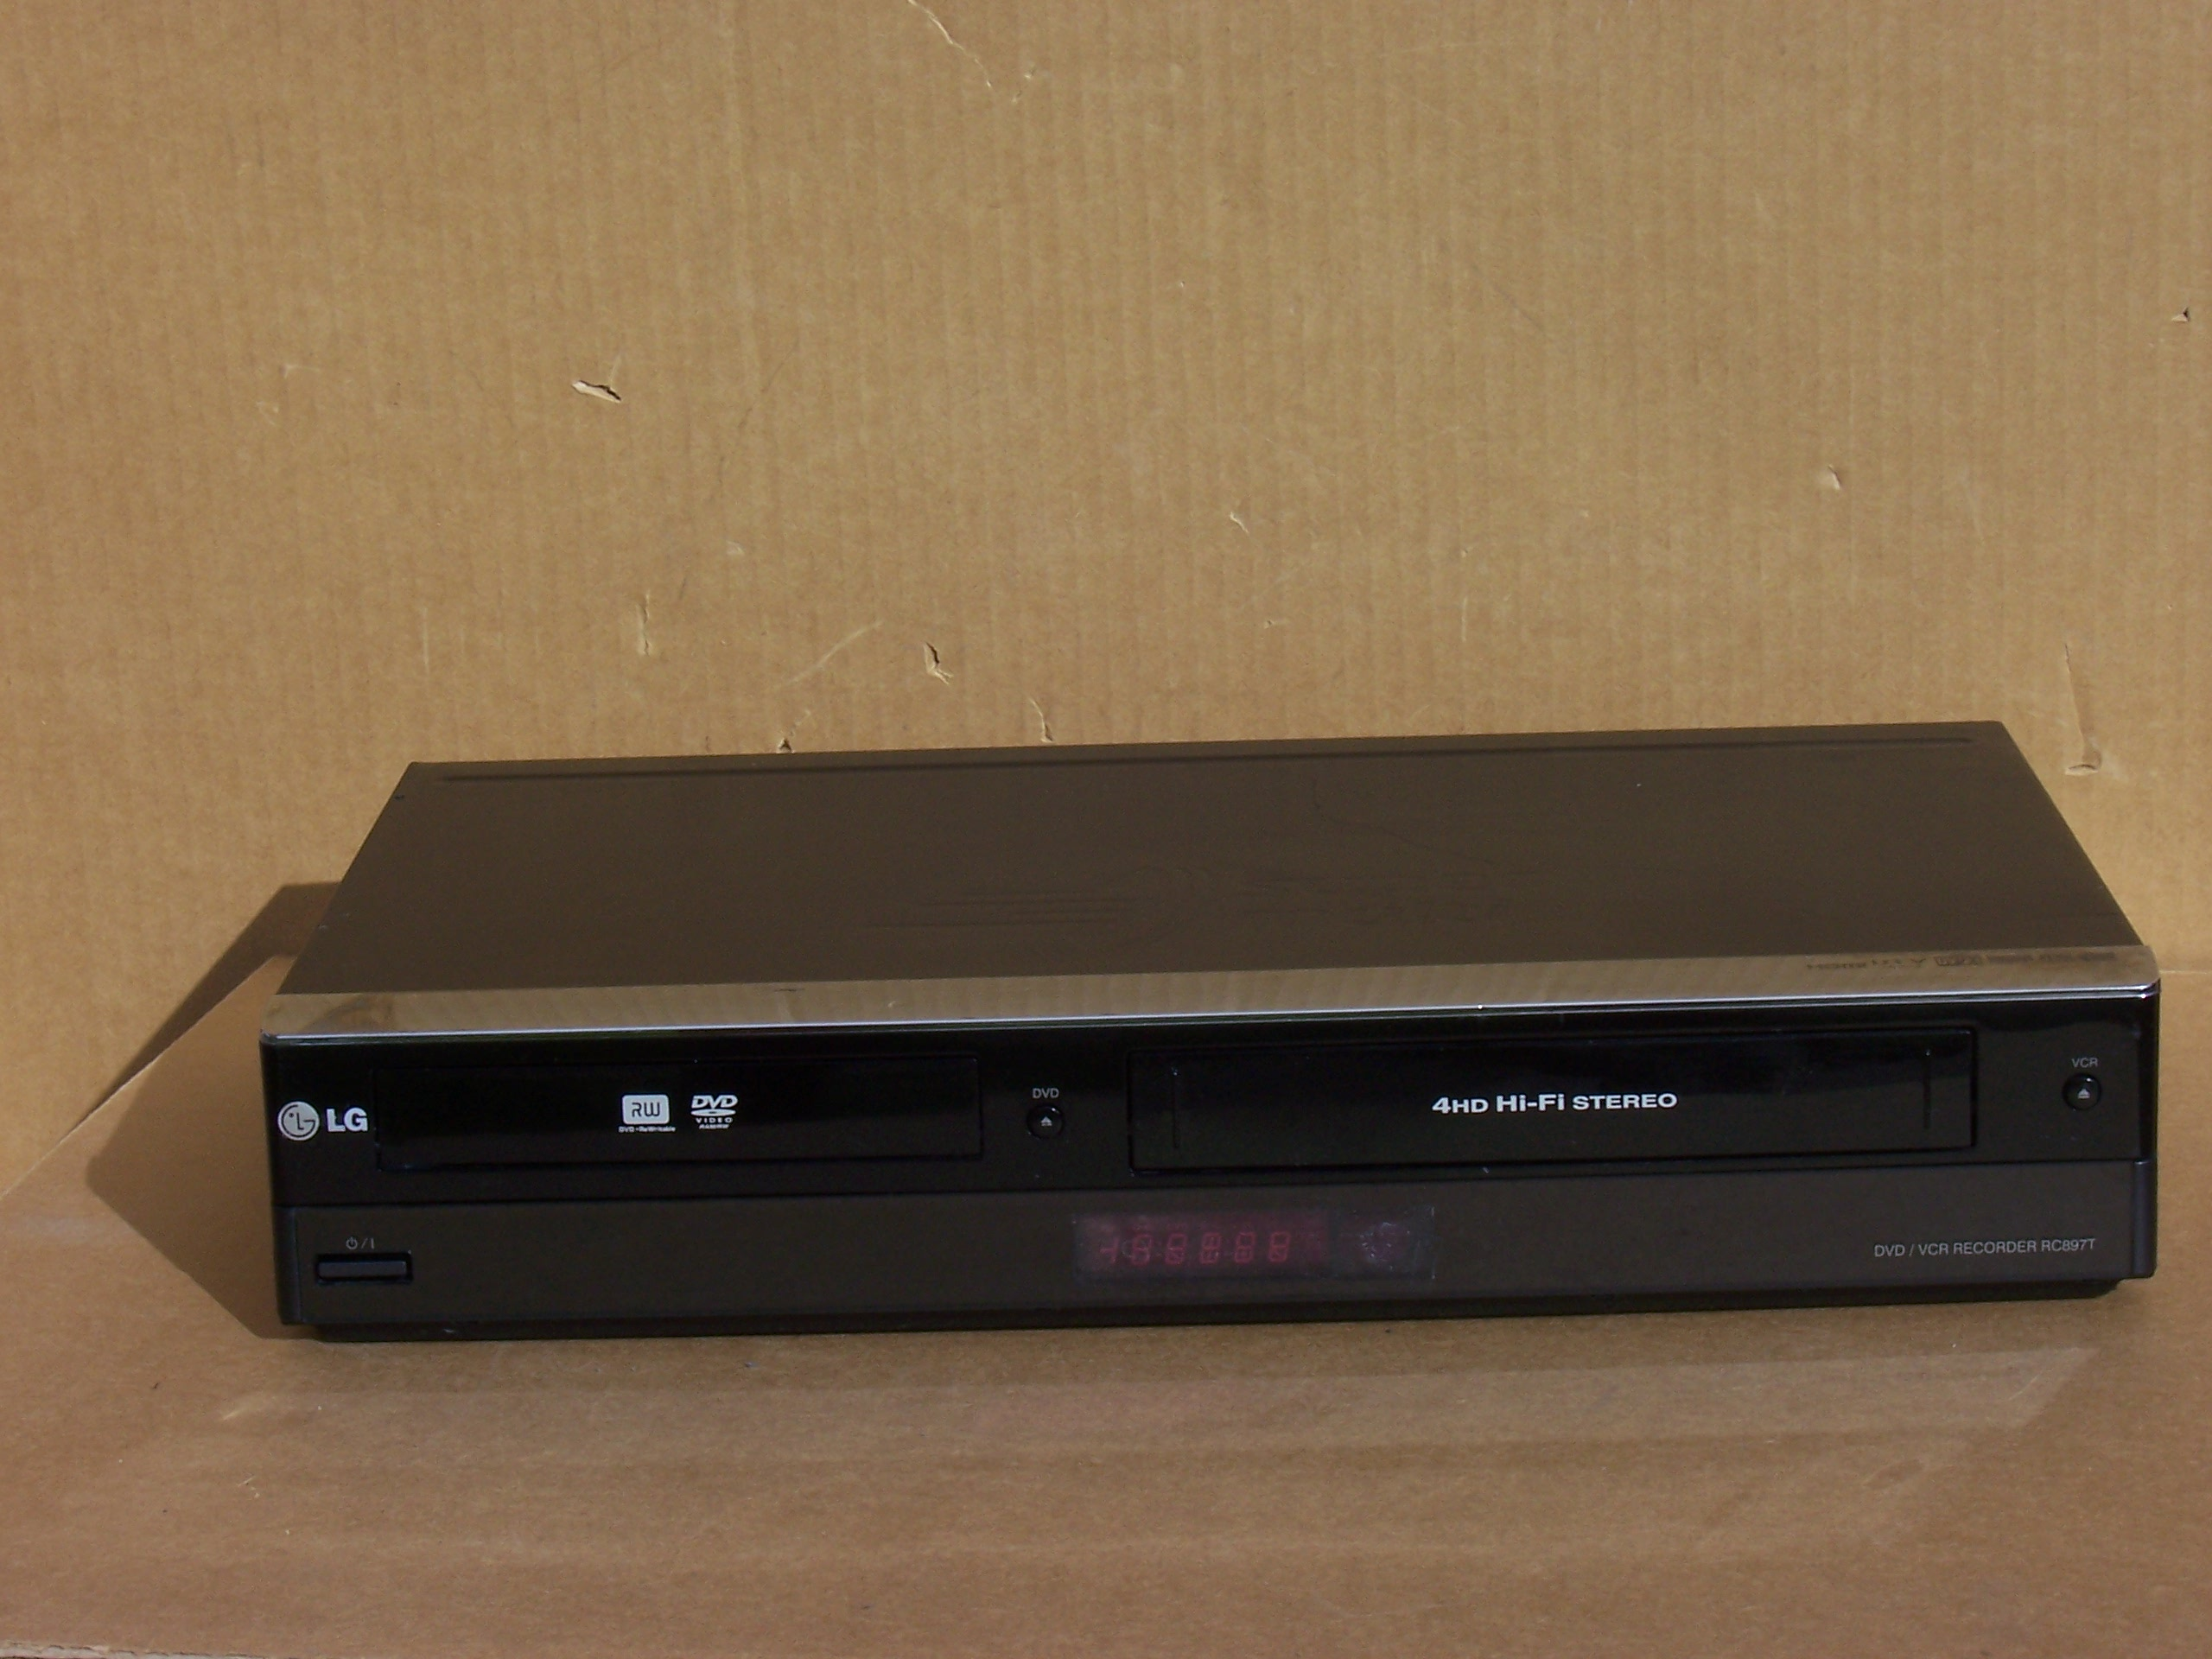 Lg dvd vcr recorder rc897t manual.